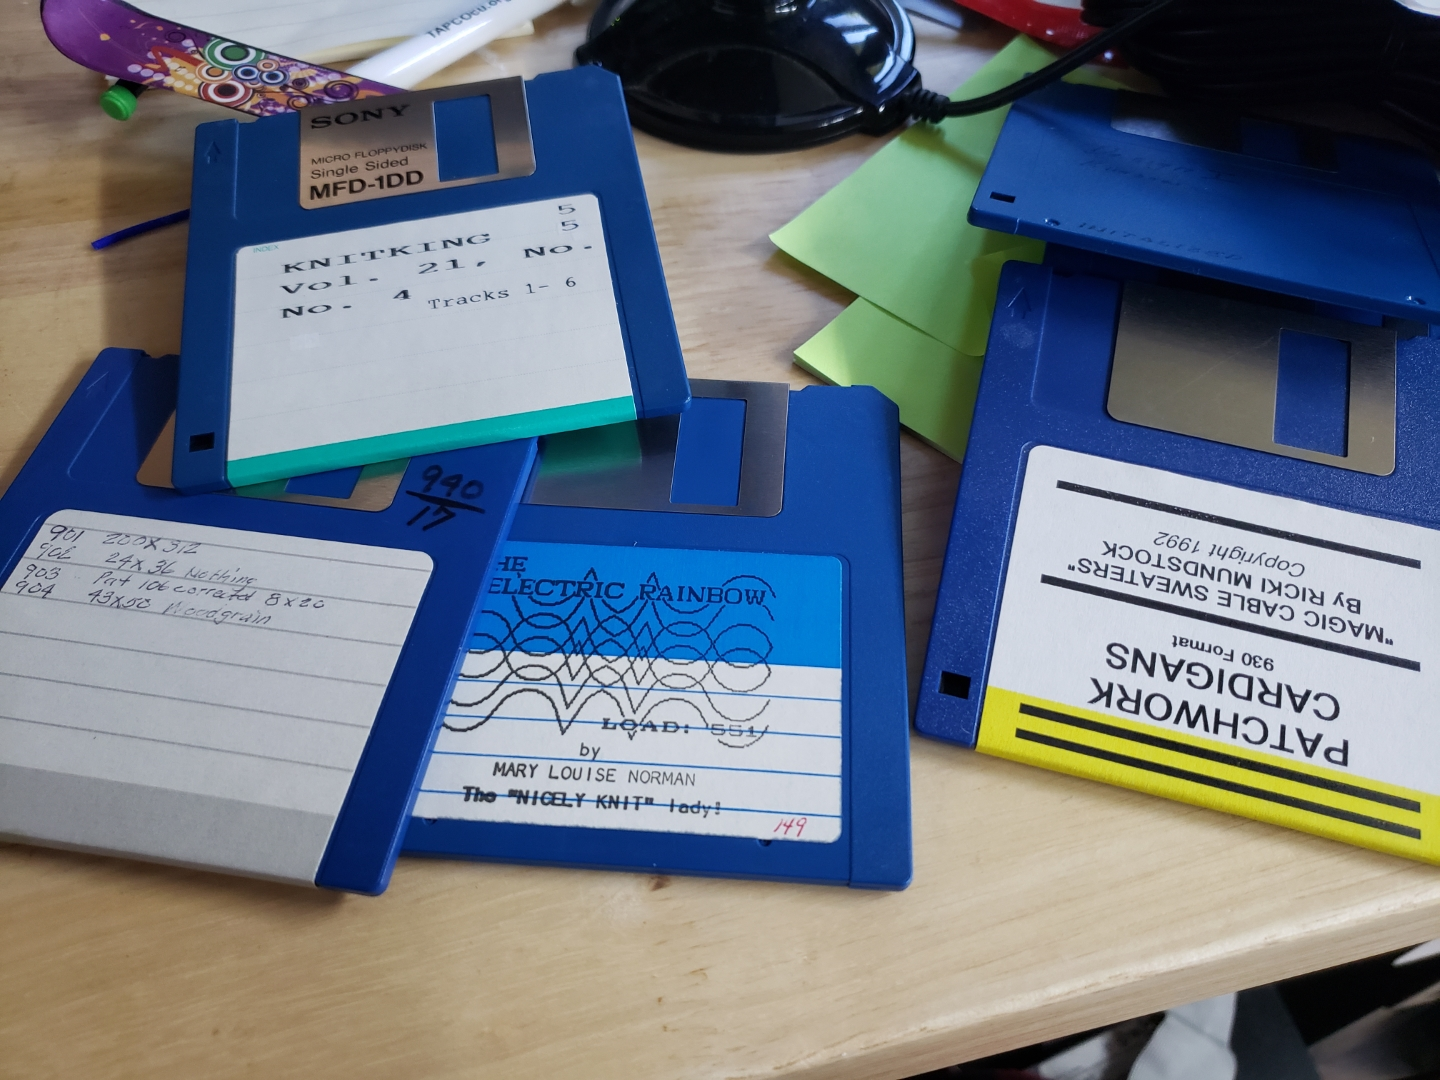 """Several blue 3.5"""" floppy disks, labeled with knitting patterns."""